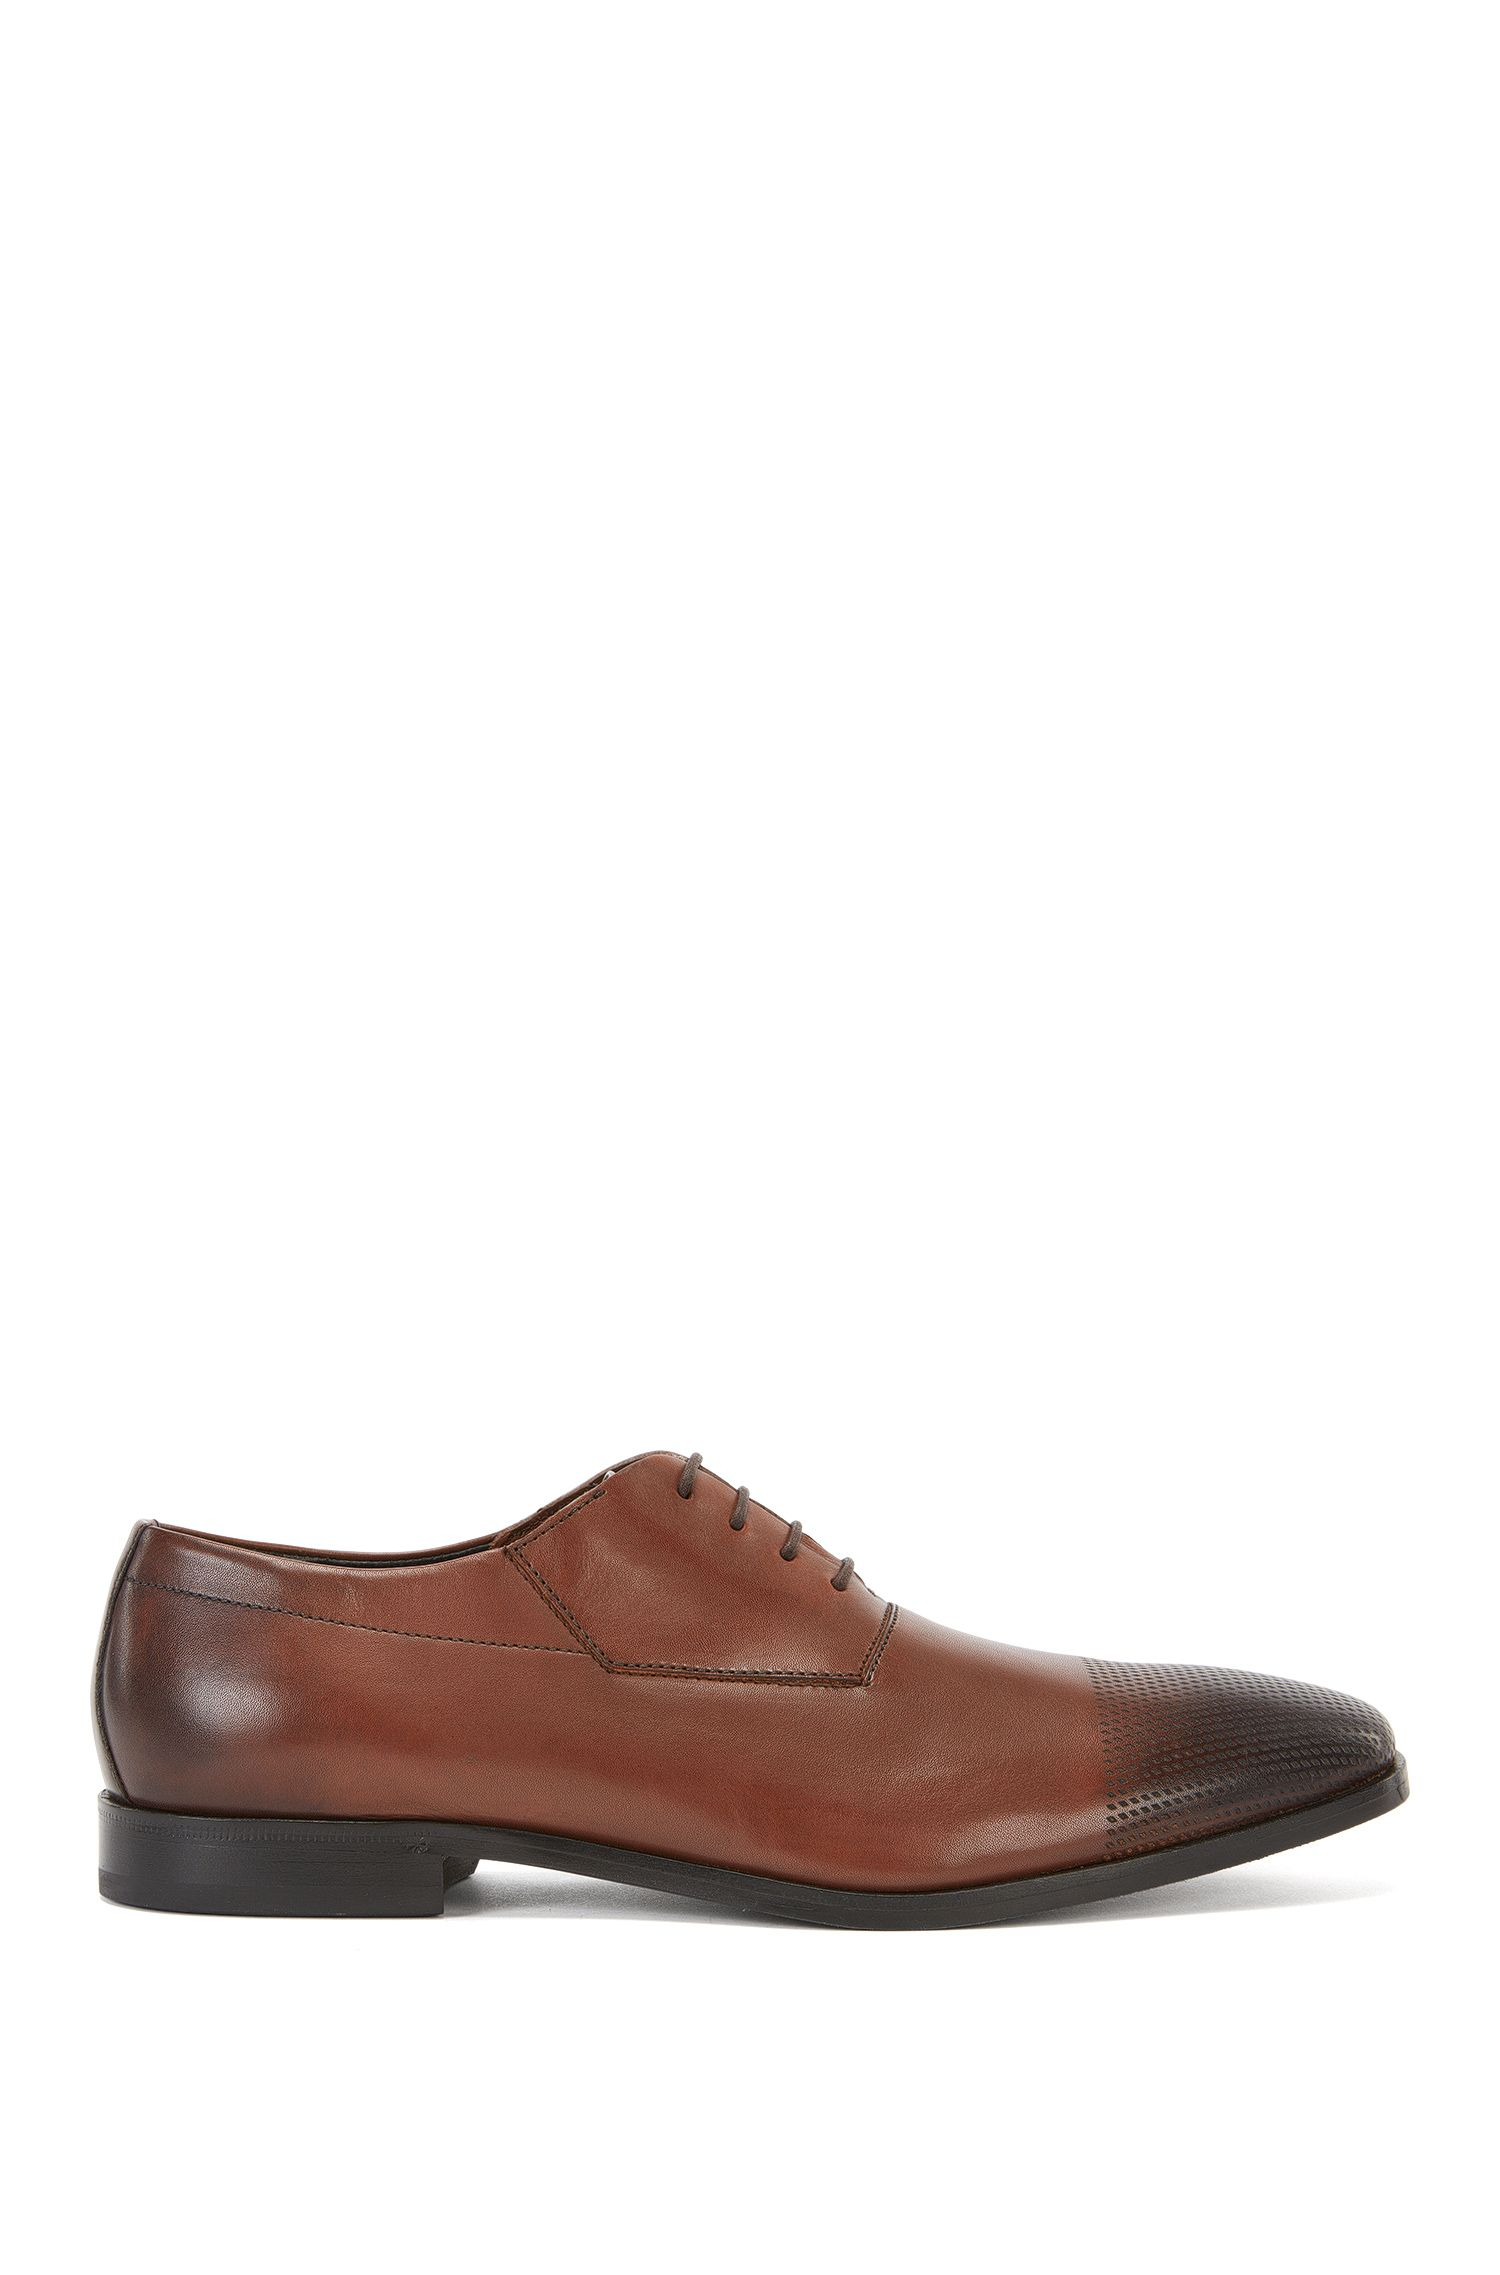 Perforated Leather Toe Oxford Dress Shoe | Square Oxfr Srls